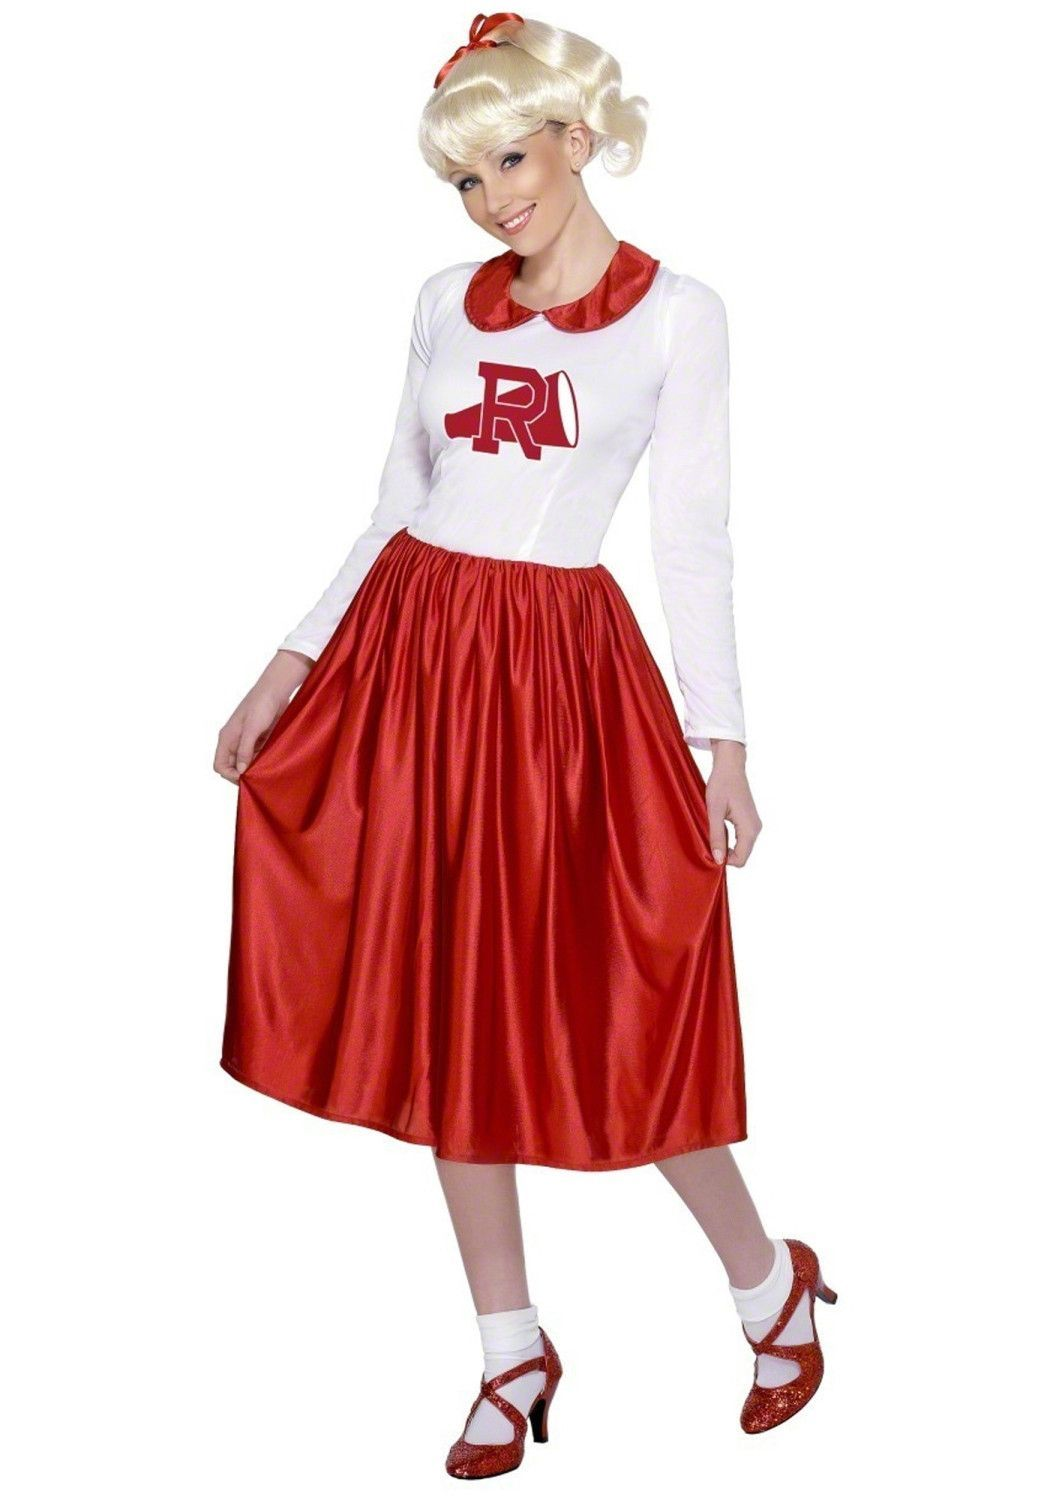 b7a3145ba548 Teen Rydell High Grease Cheerleader Costume